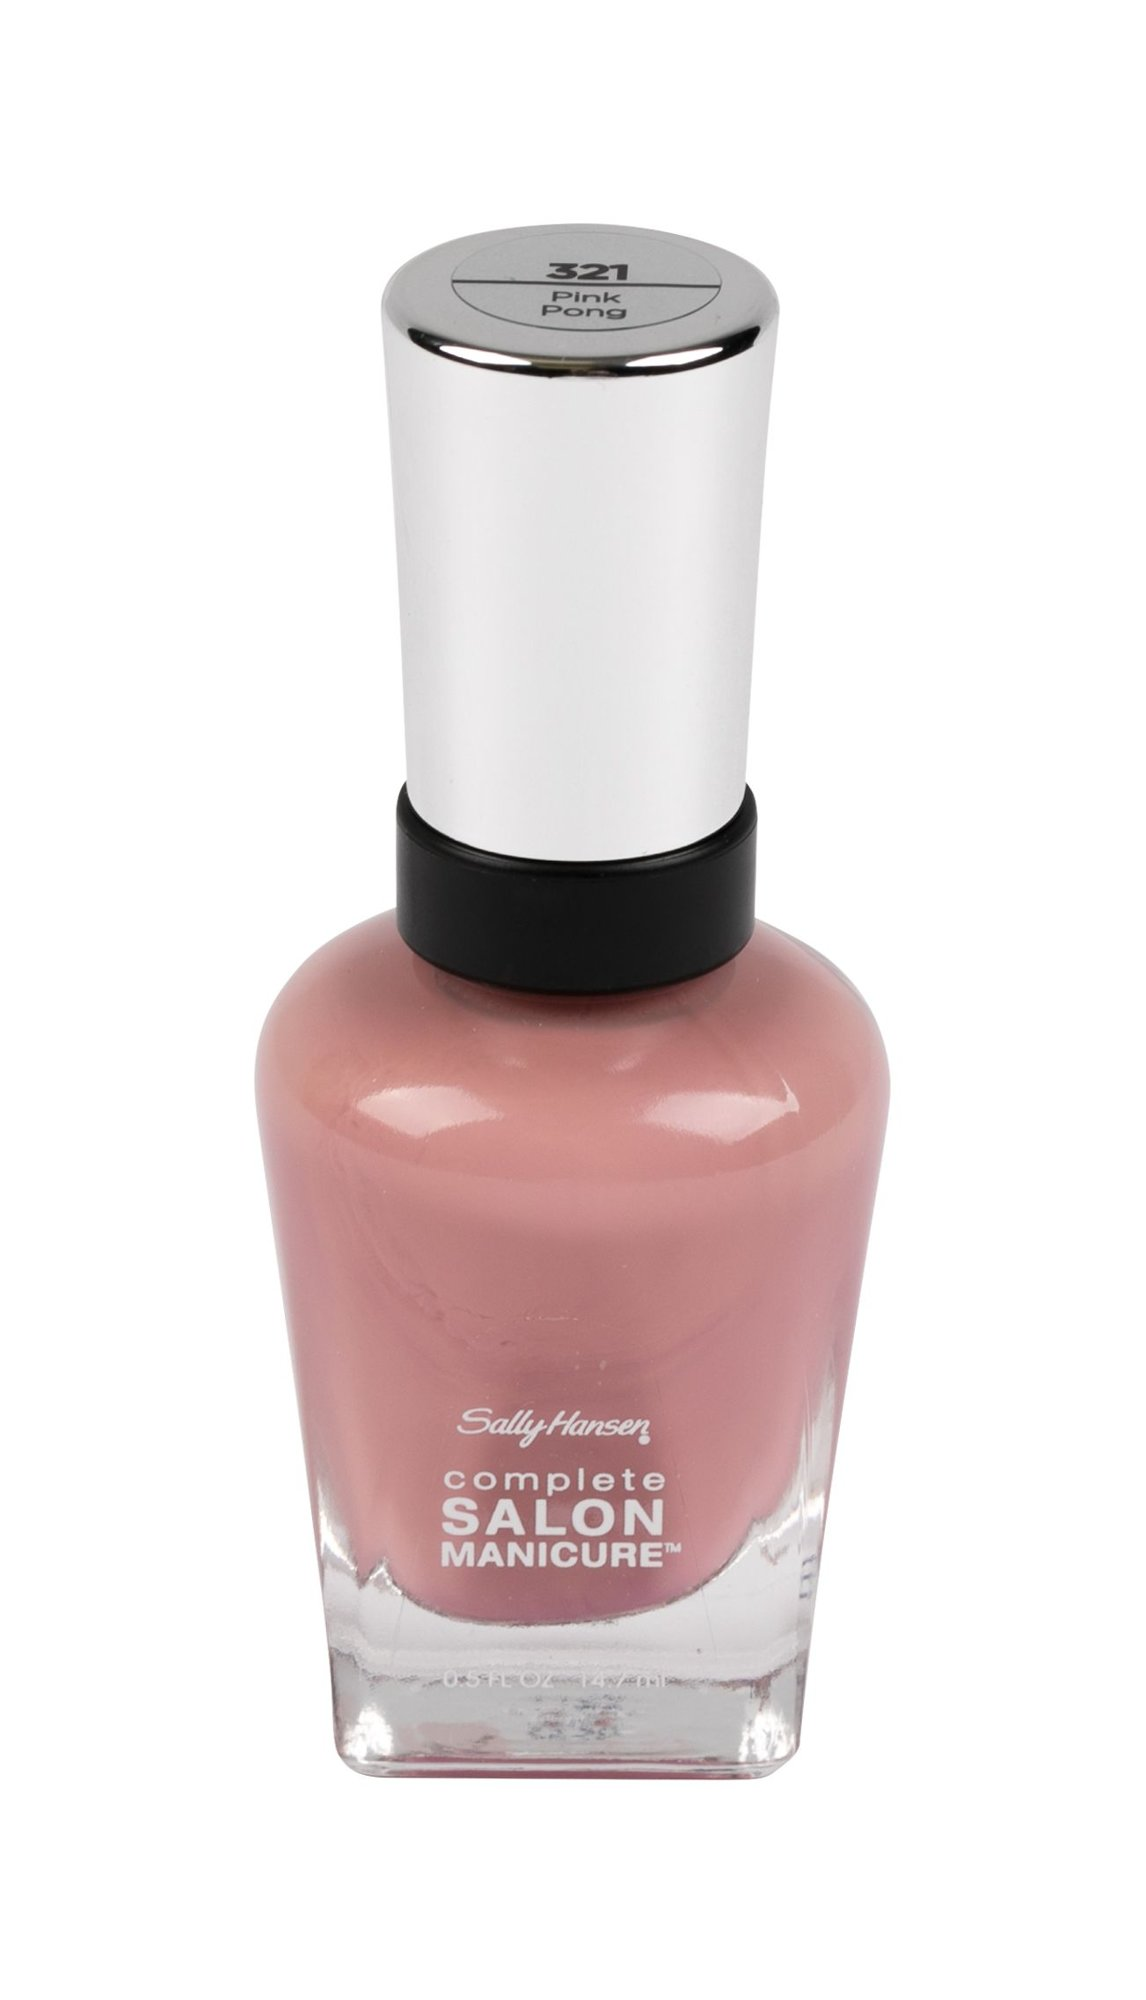 Sally Hansen Complete Salon Manicure Nail Polish 14,7ml 321 Pink Pong